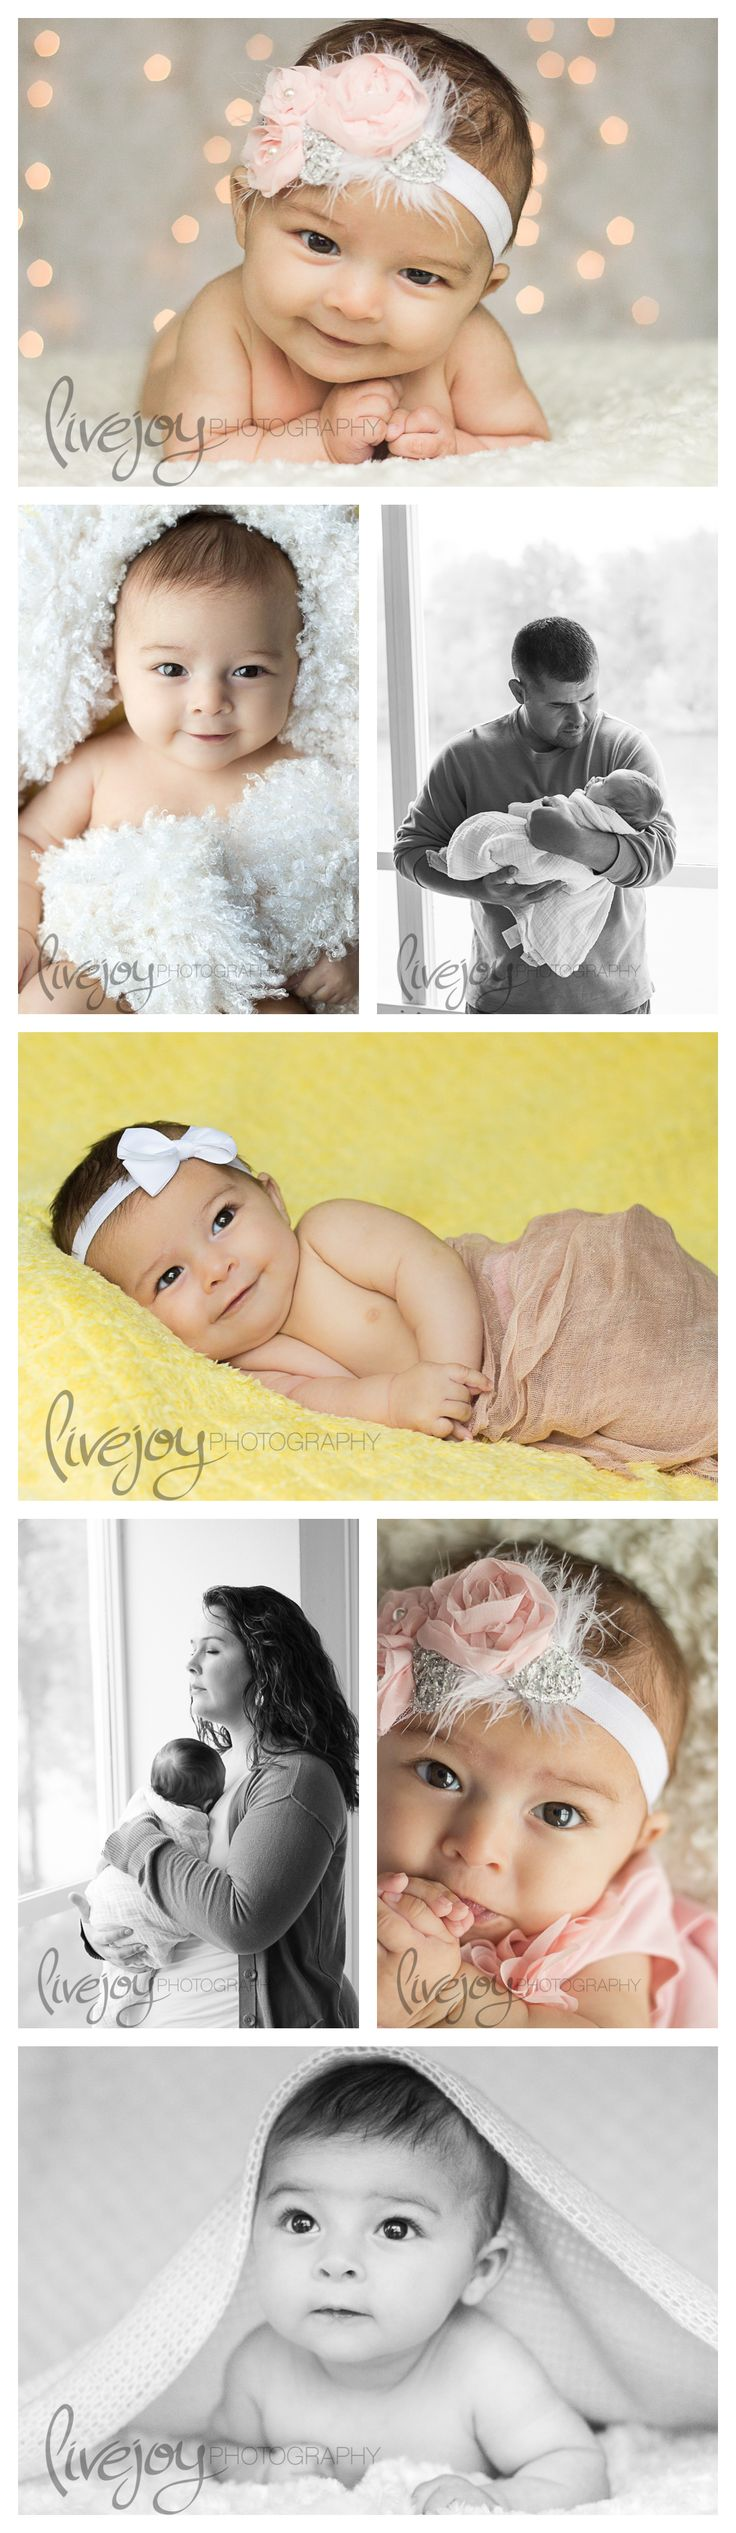 3 Month Old Baby Girl Photography #livejoyPhotography #photography #newborn